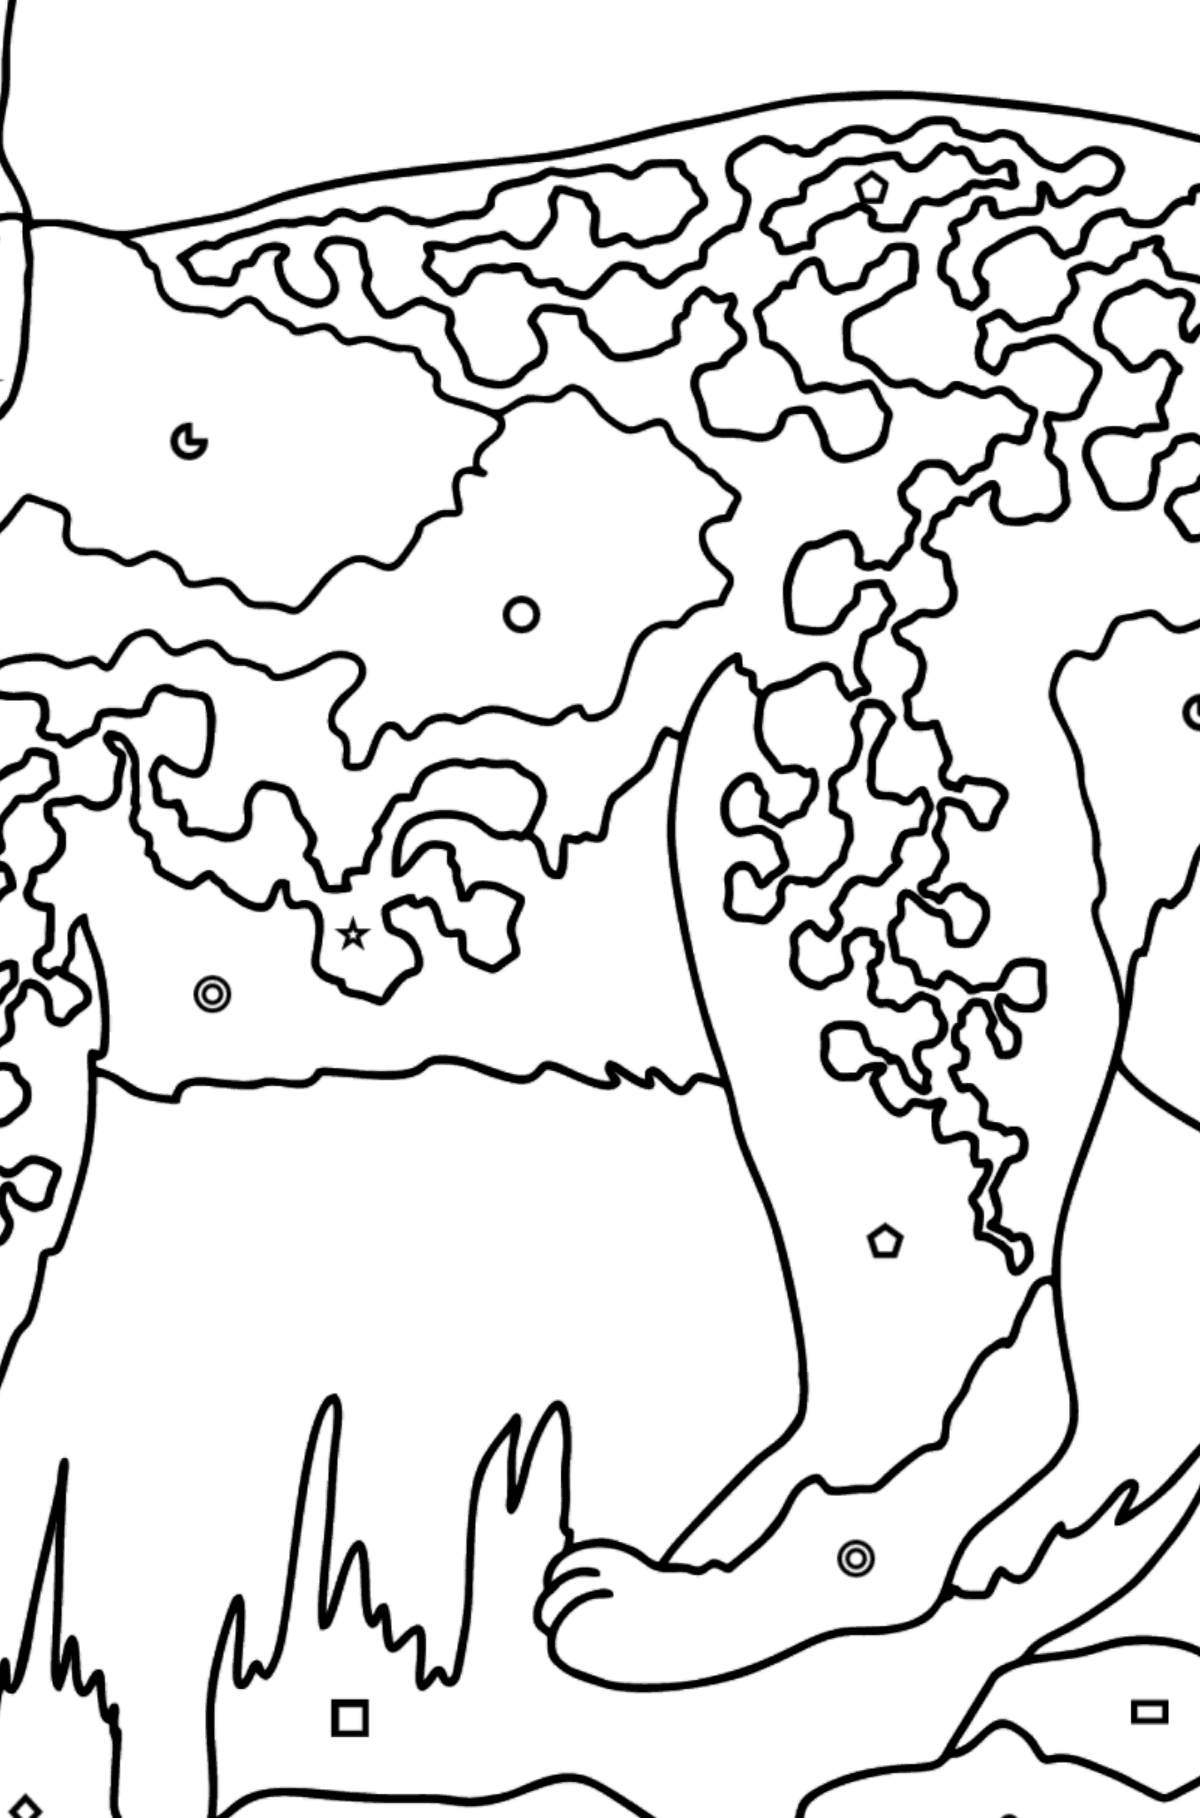 Coloring Page - A Lynx in the Forest - Coloring by Geometric Shapes for Kids